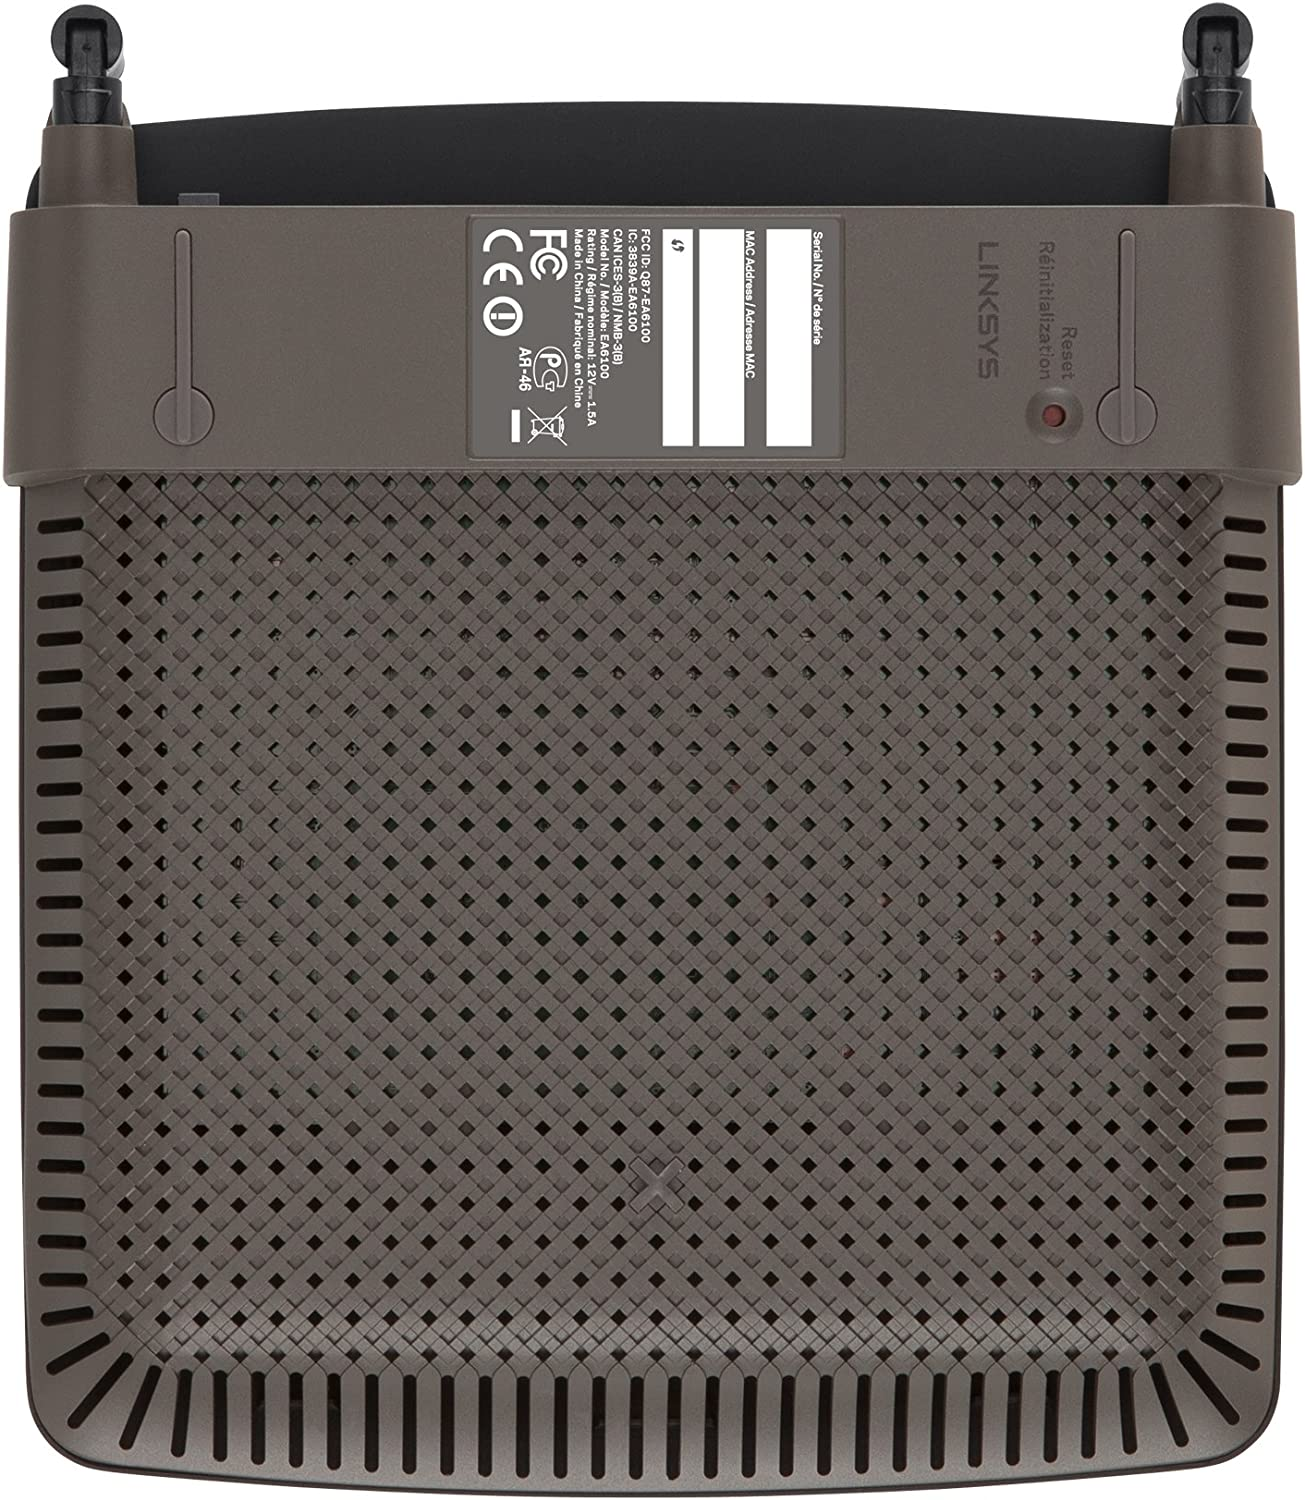 USB 3.0 and Adjustable Antennas Linksys EA6900 Dual Band AC1900 Smart Wi-Fi Router with Gigabit Ethernet